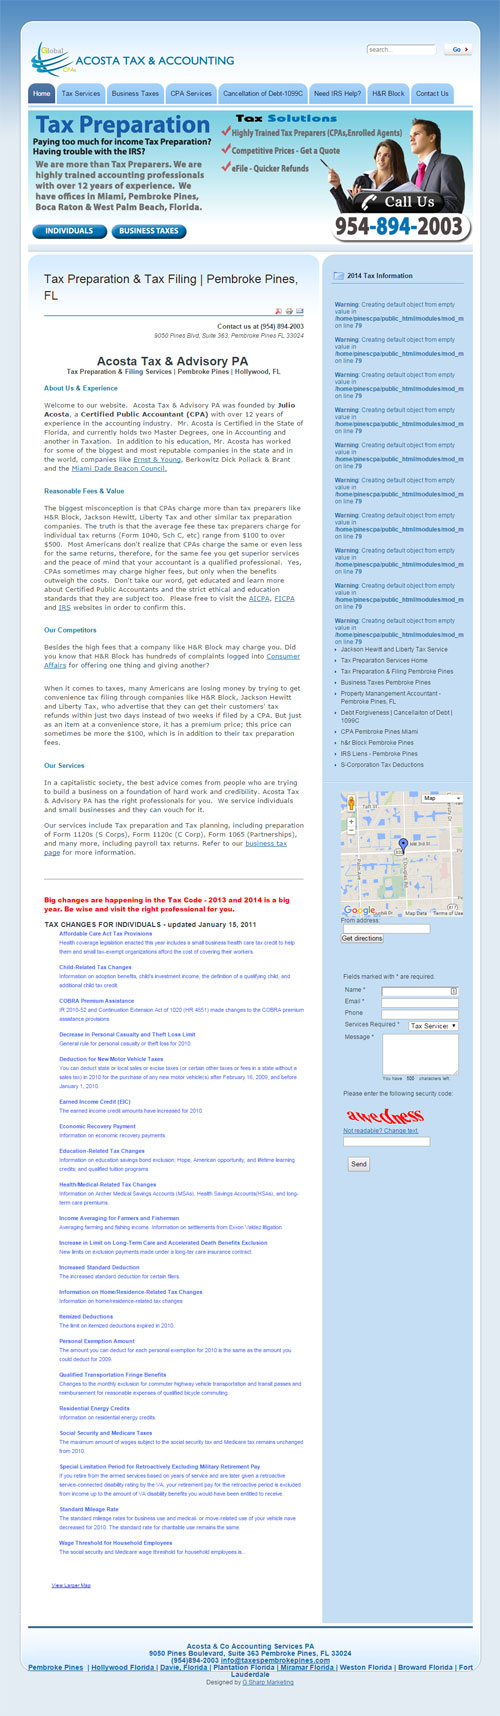 acosta tax and accounting old website